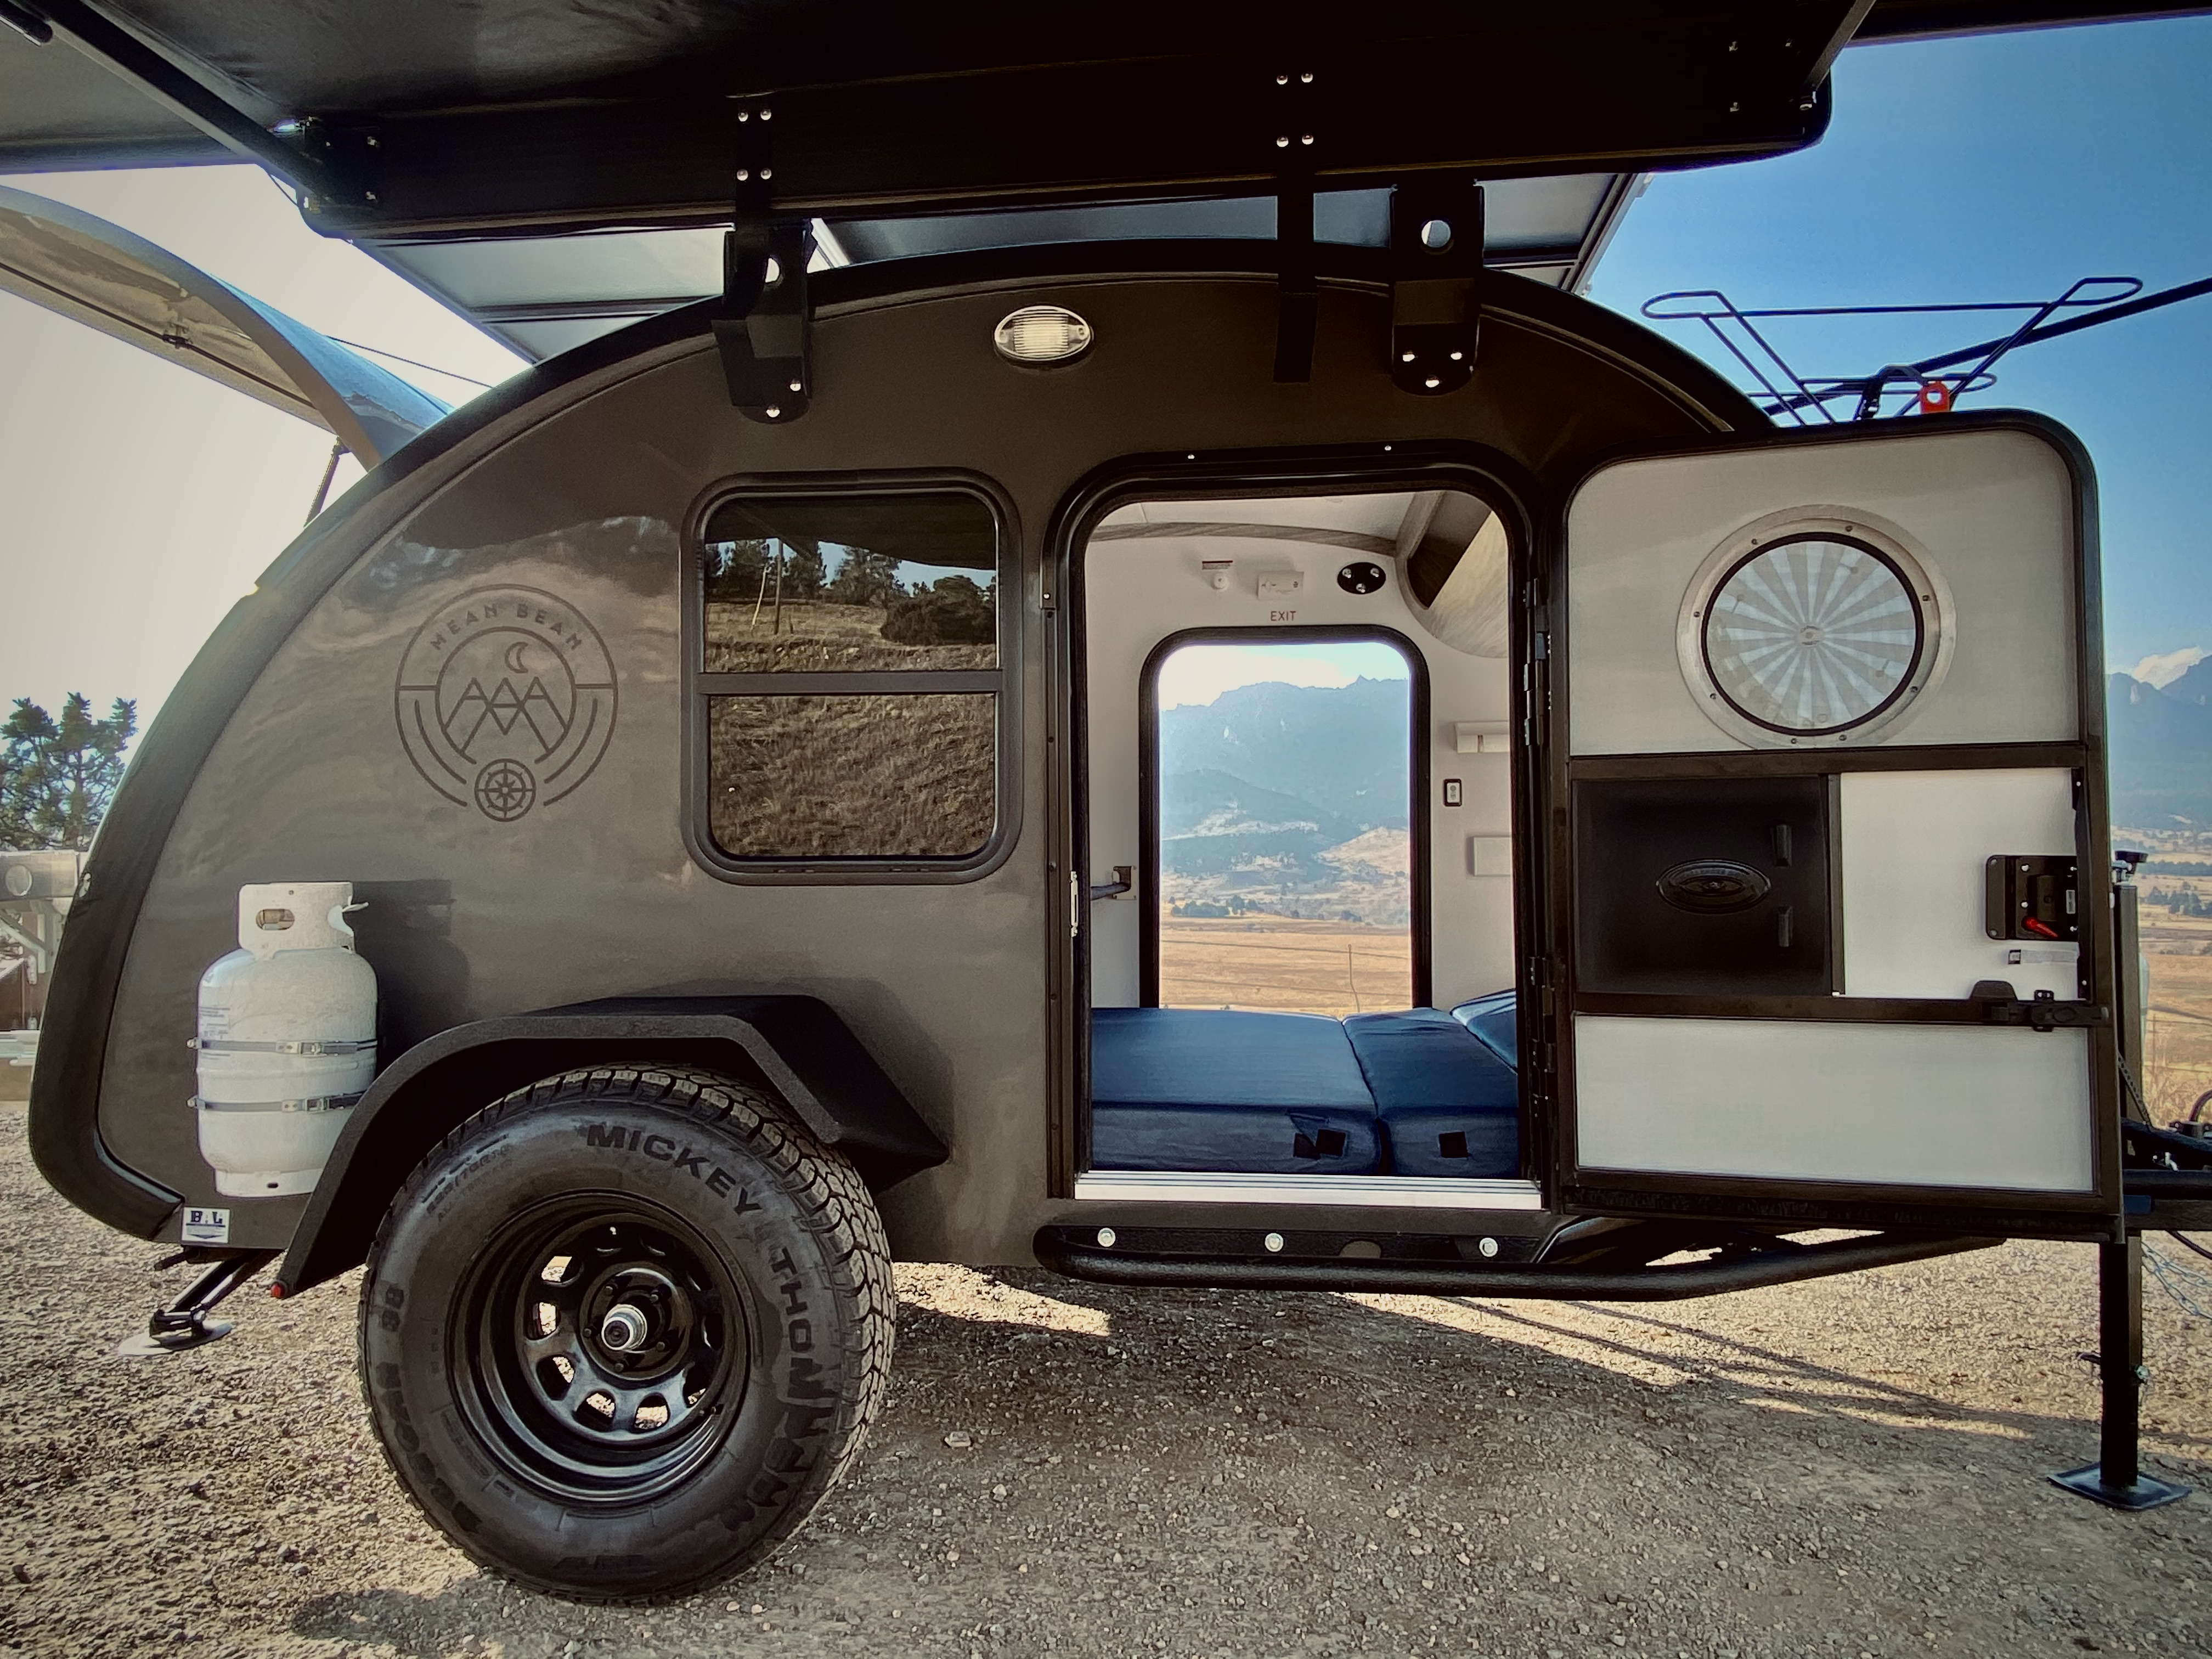 Mobi may be a small camper compared to most, but with all his doors and windows and his outdoor kitchen, he feels incredibly spacious and roomy.. Bean Teardrop Trailer Mean Bean 2021